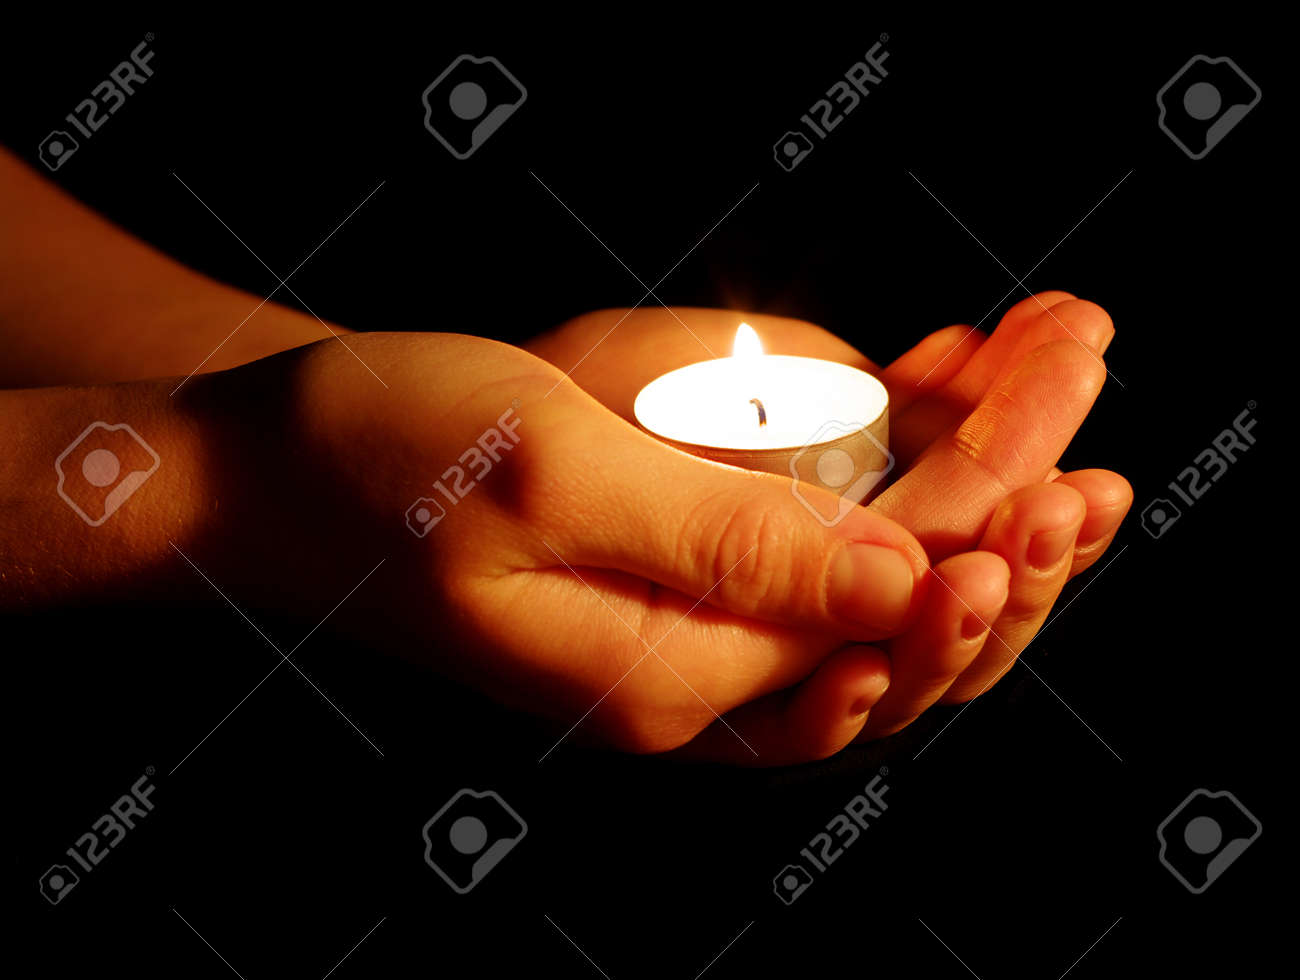 Burning Of The Candle In A Hand In Darkness Stock Photo, Picture ... for Holding Candle In The Dark  575cpg